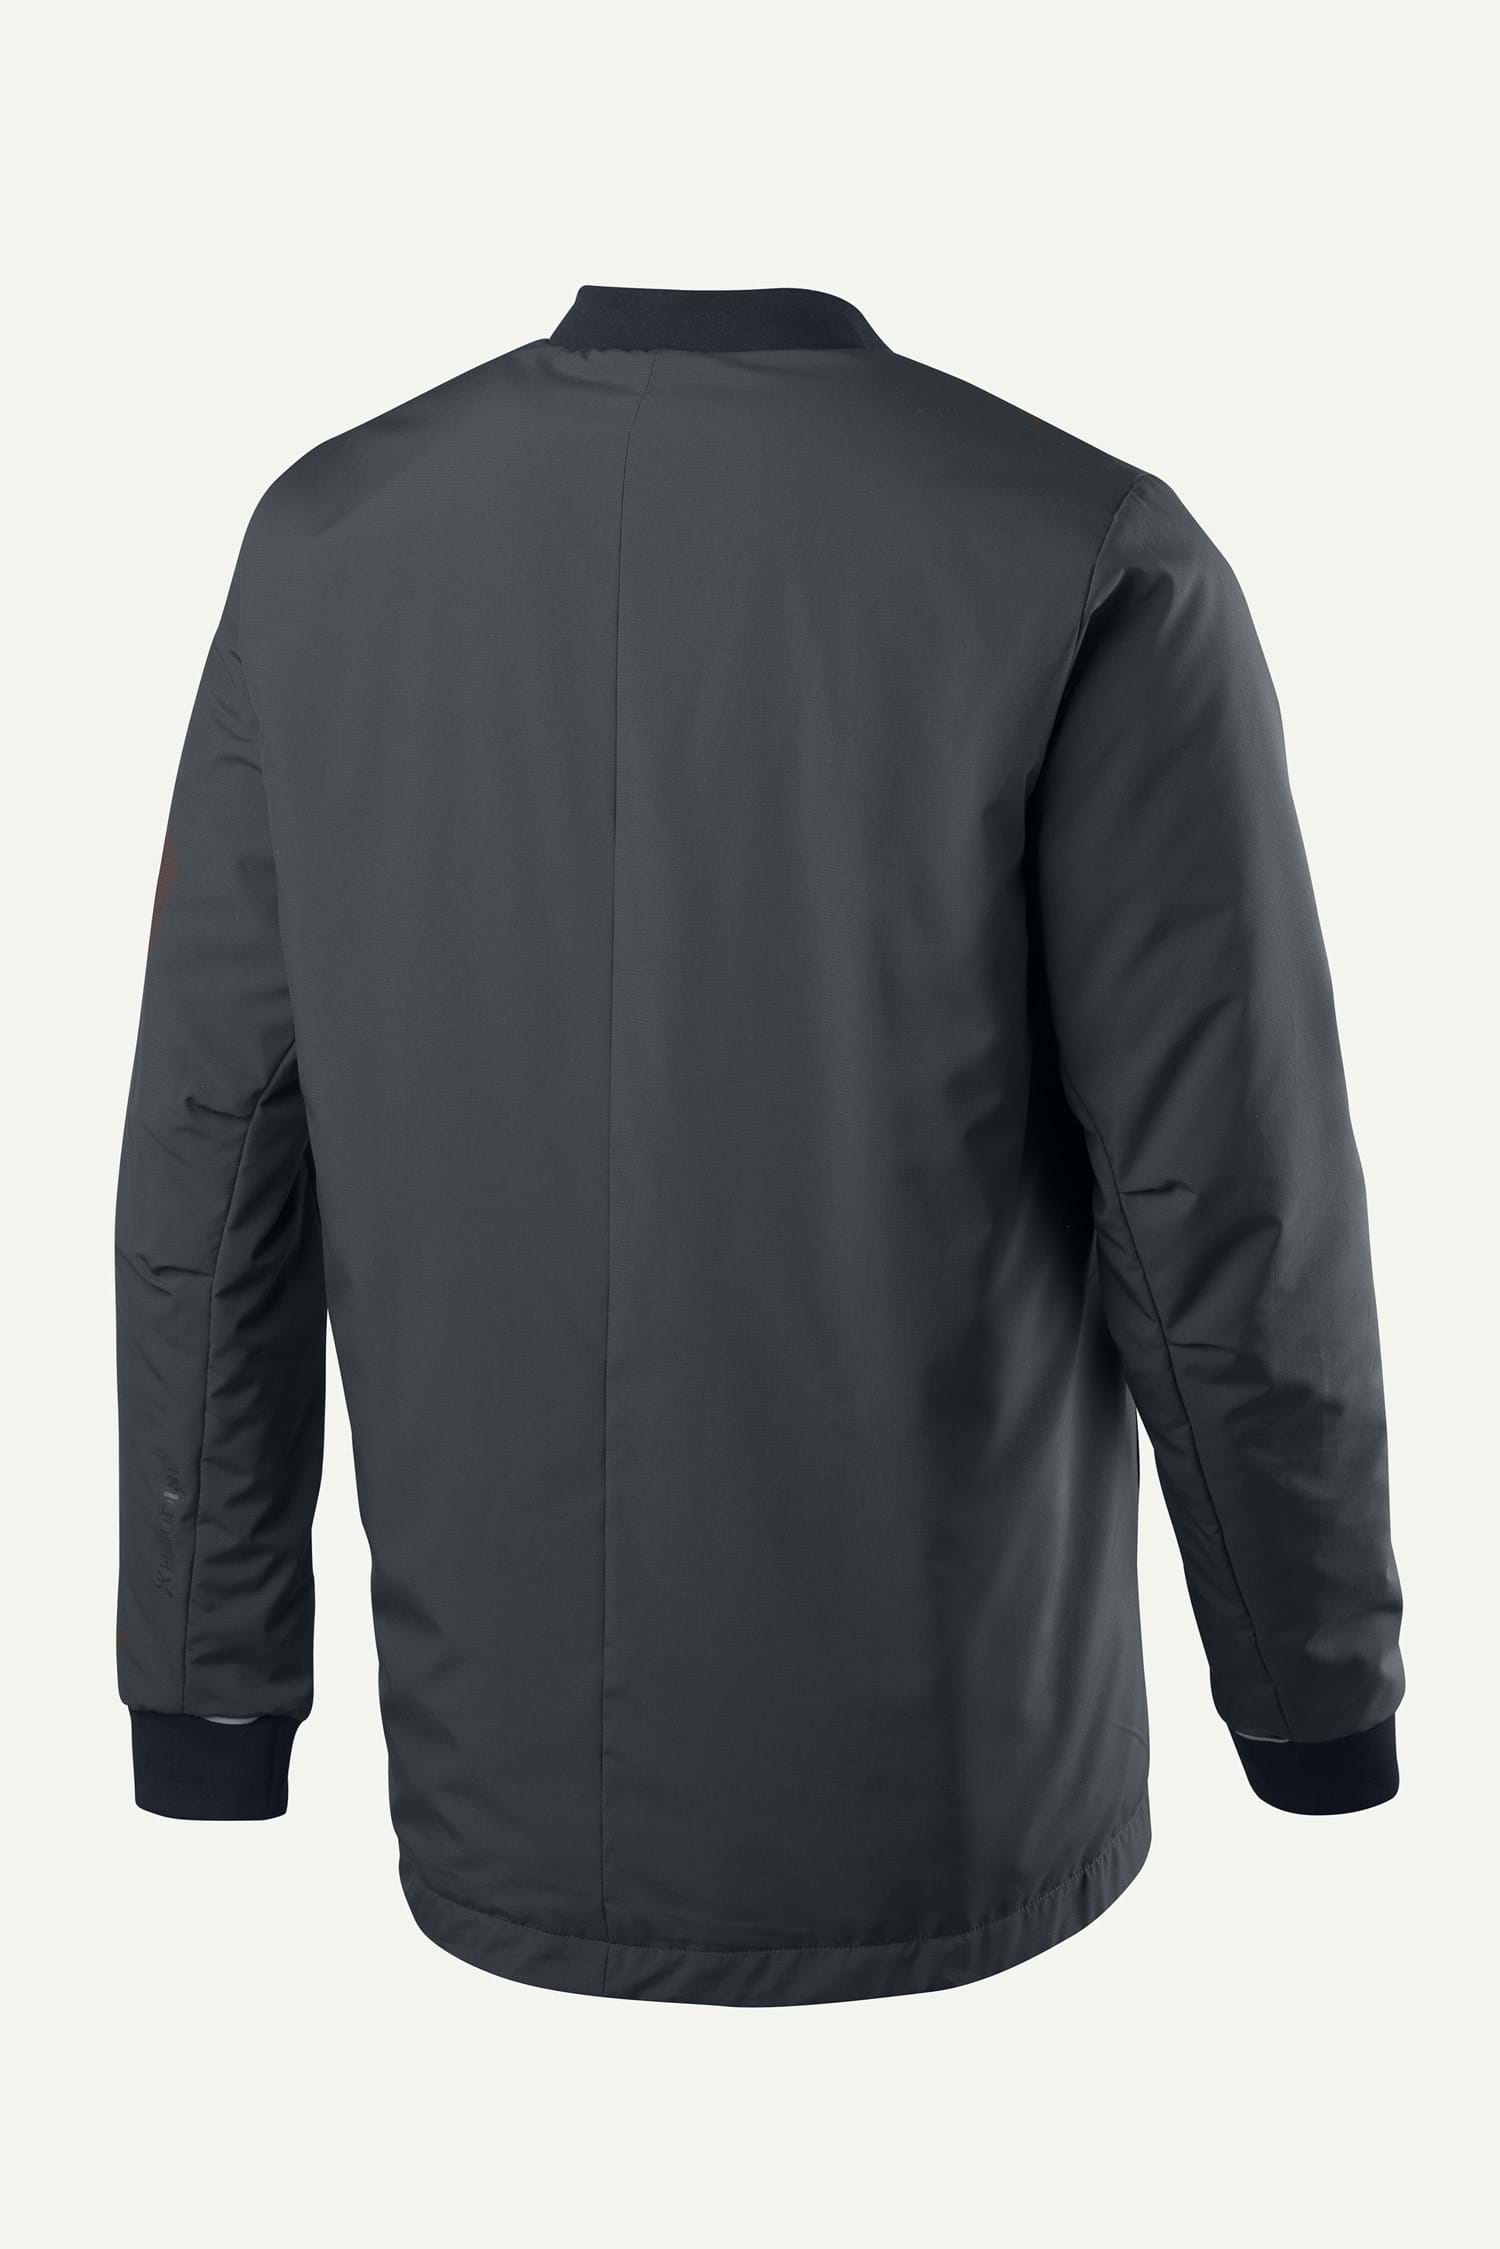 2ND LAYER MENS JACKET, BLACK GRAY